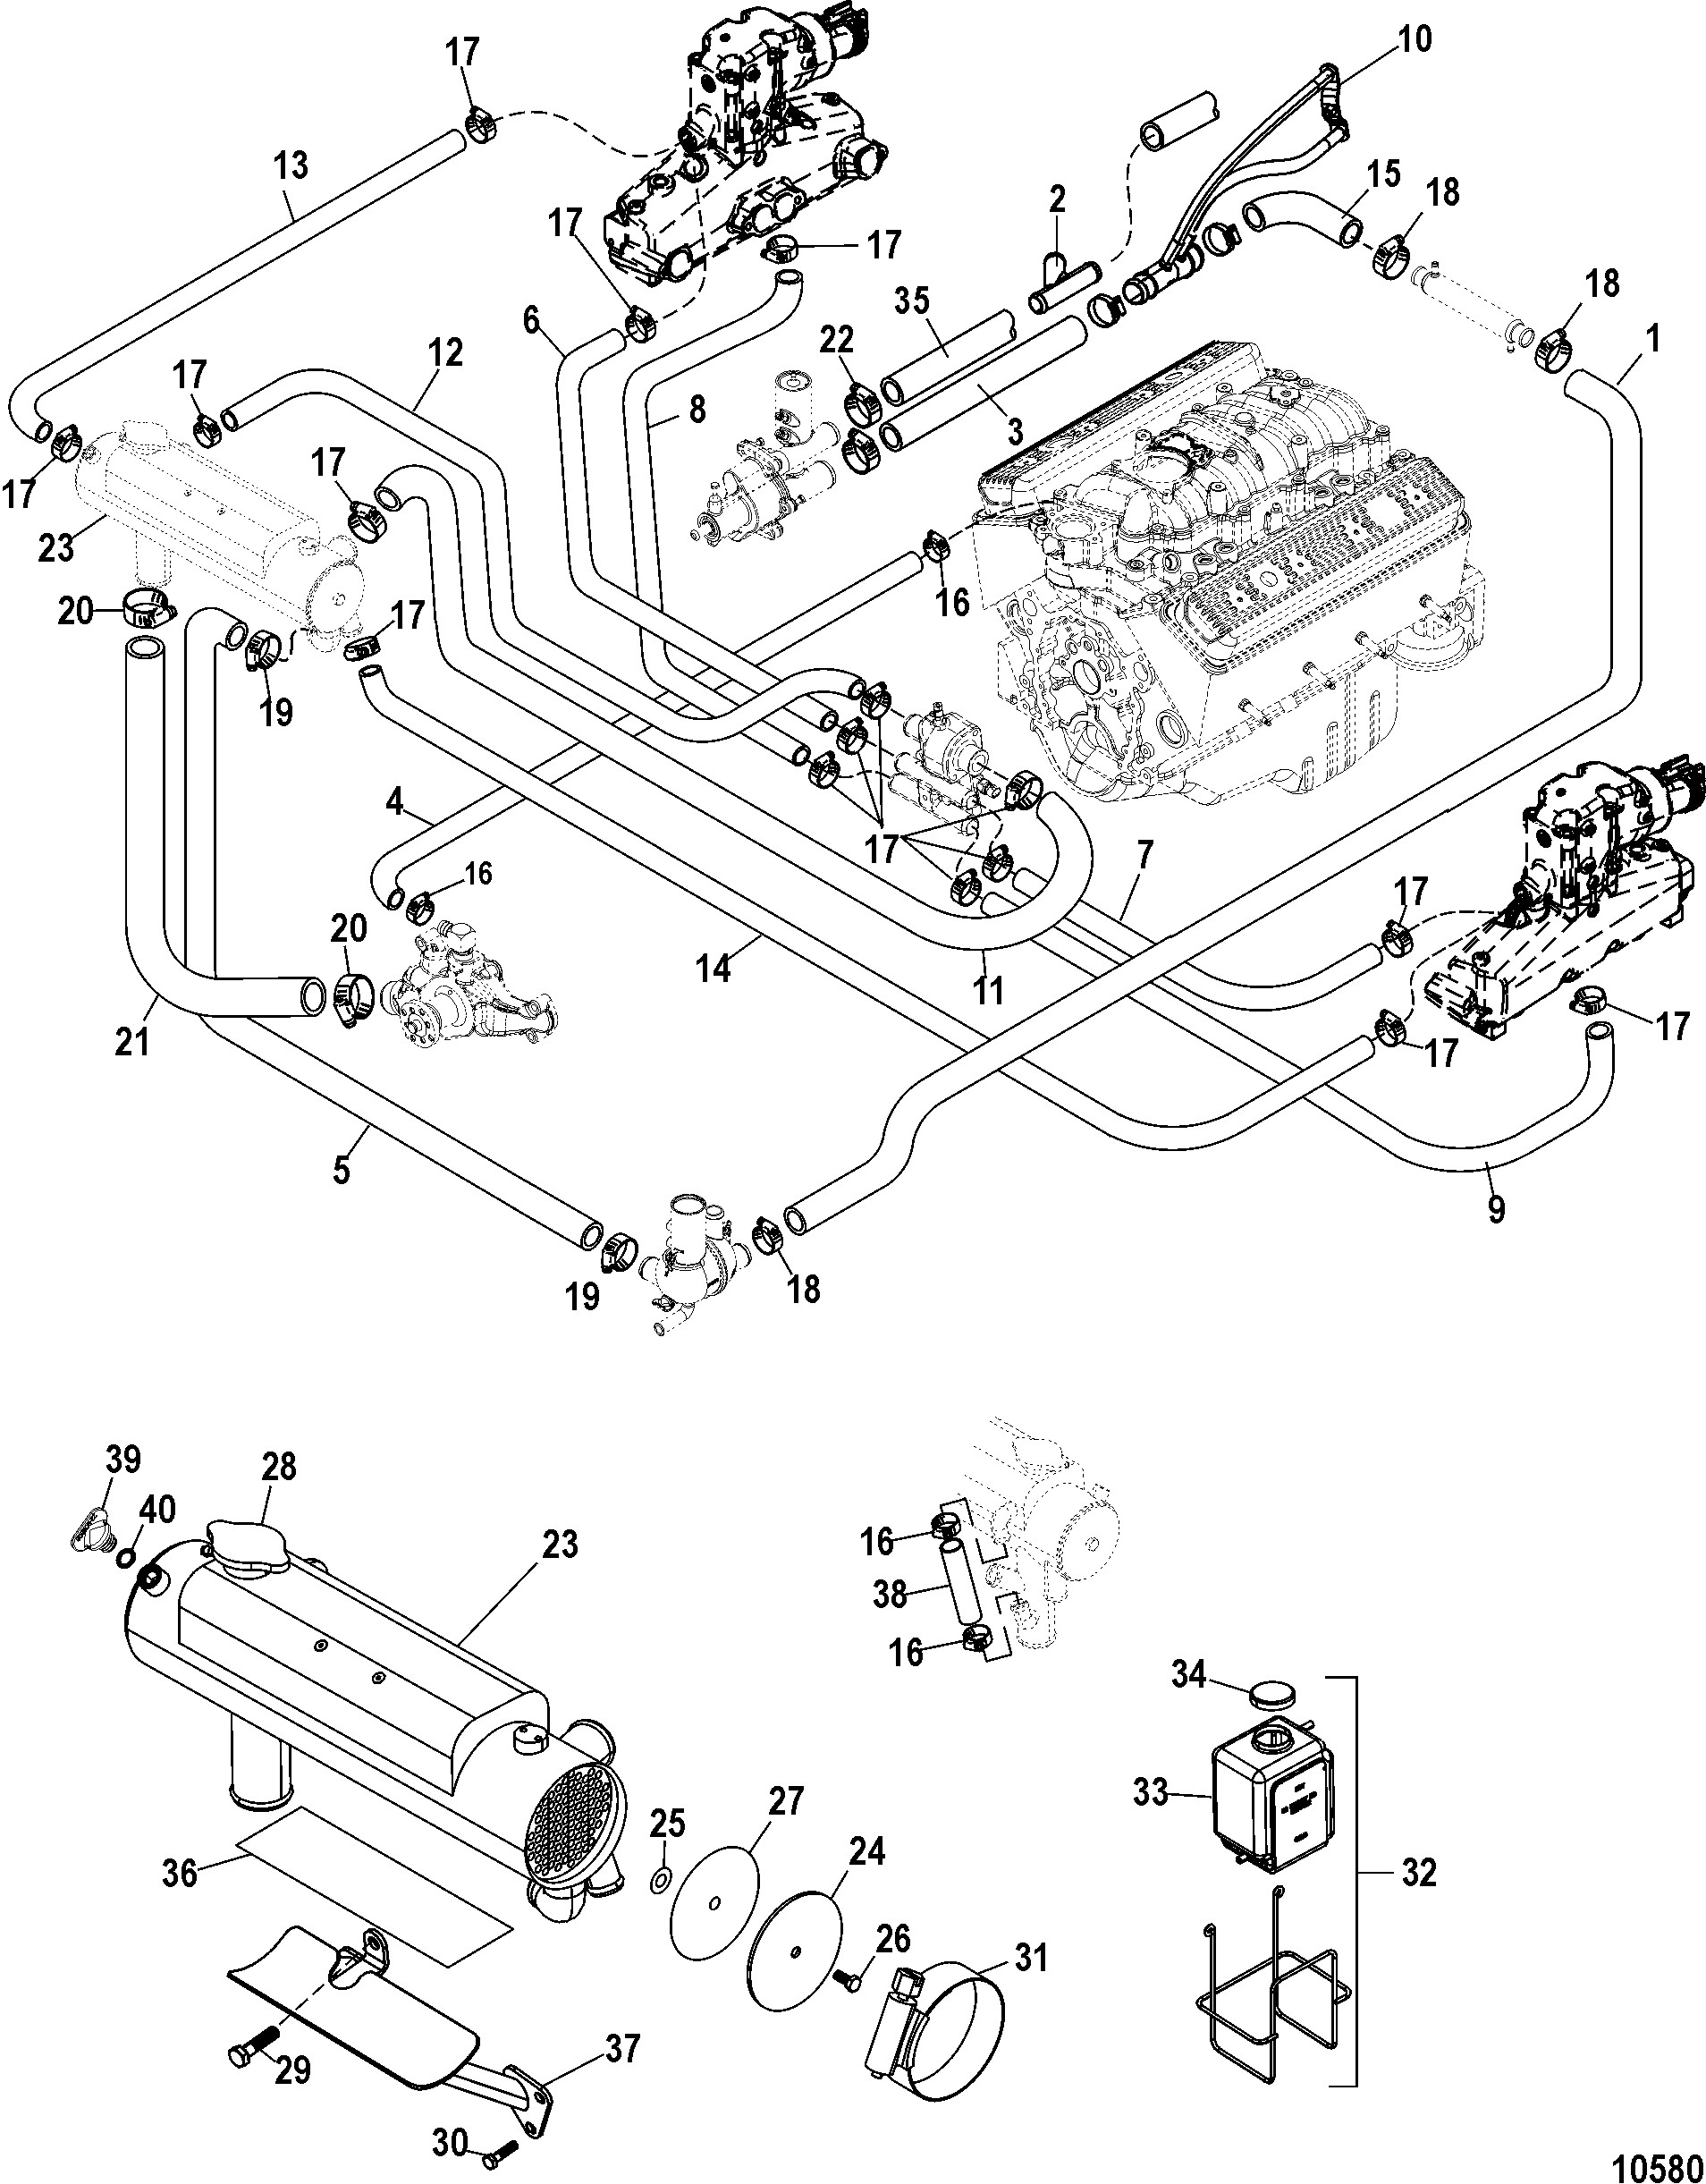 Mercury mercruiser 5 7l mpi horizon mie 1a up likewise 2001 nissan pathfinder wiring diagram as well 1996 nissan bmw x5 transmission cooler and thermostat